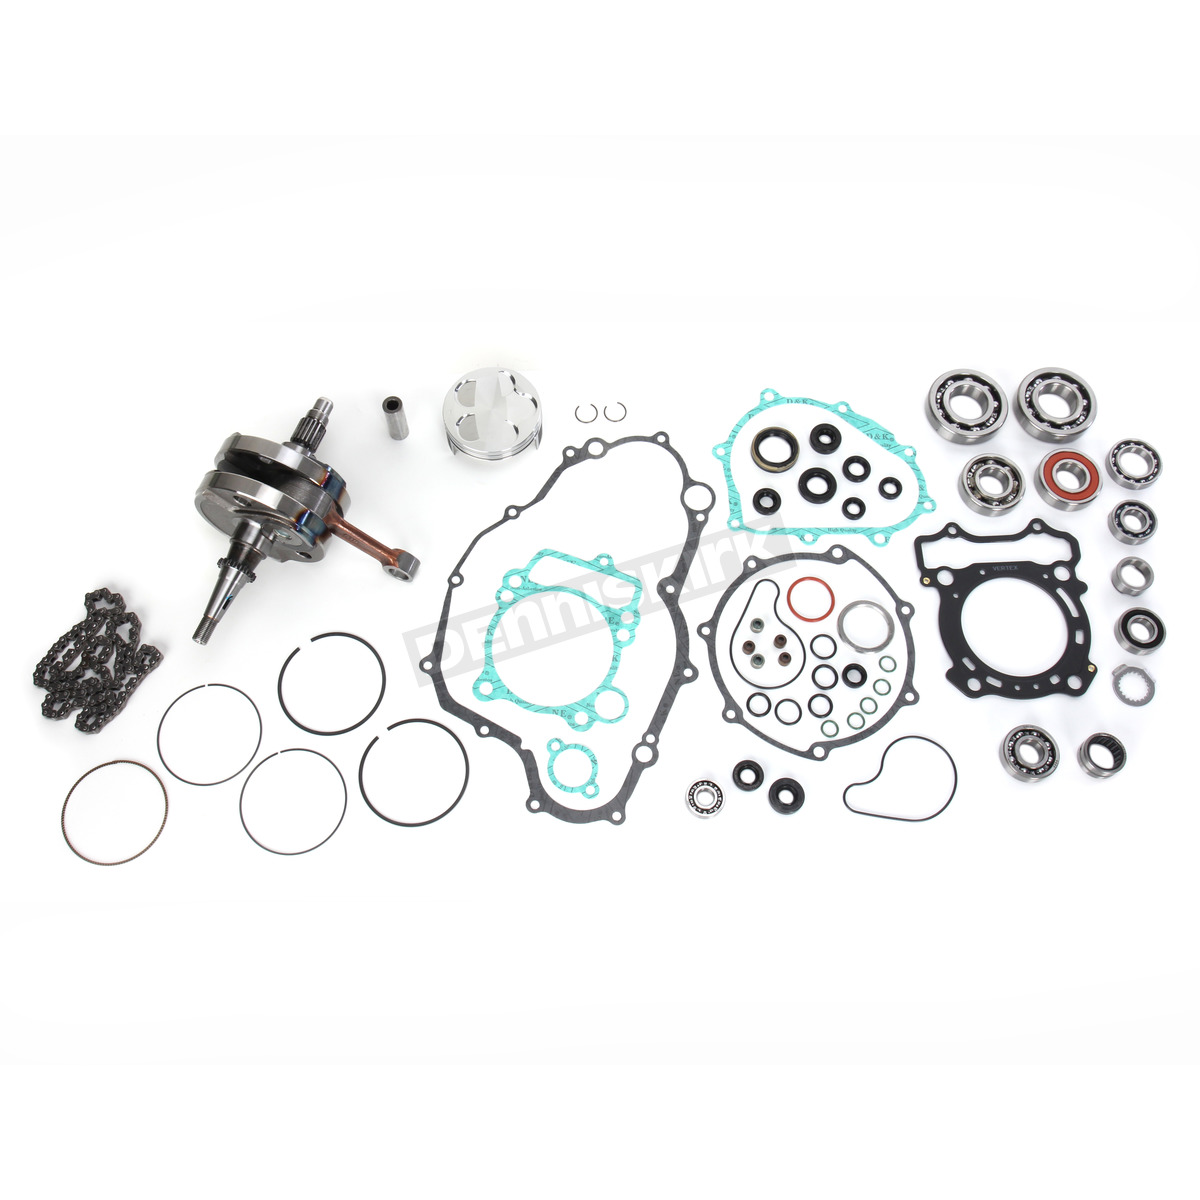 Wrench Rabbit Complete Engine Rebuild Kit 77mm Bore